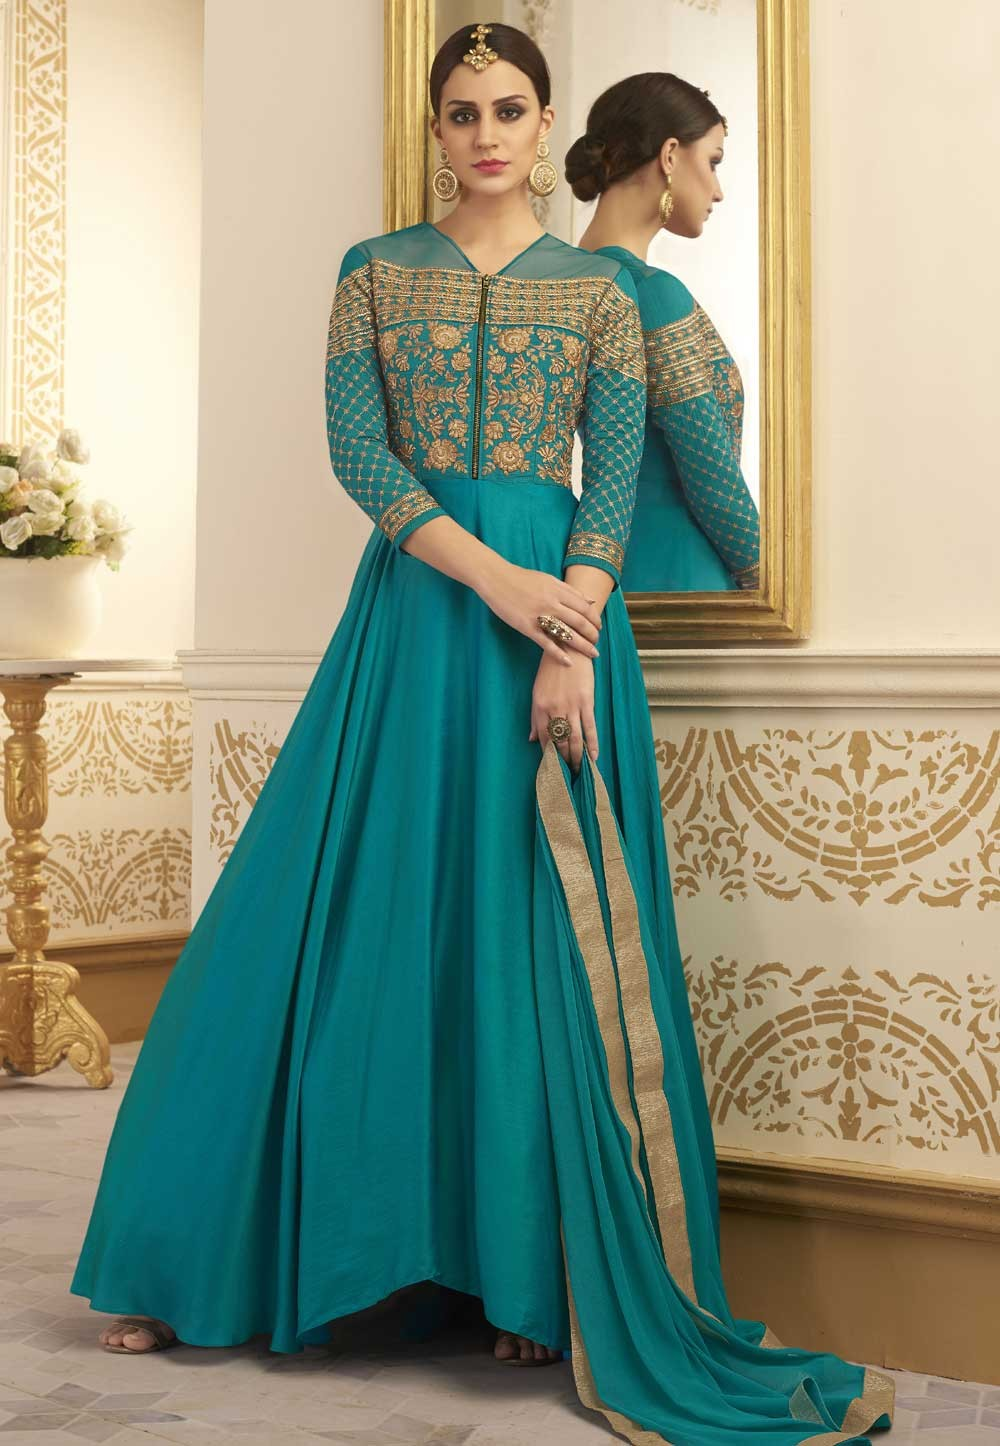 Green Color Astounding Unstitched Salwar Kameez